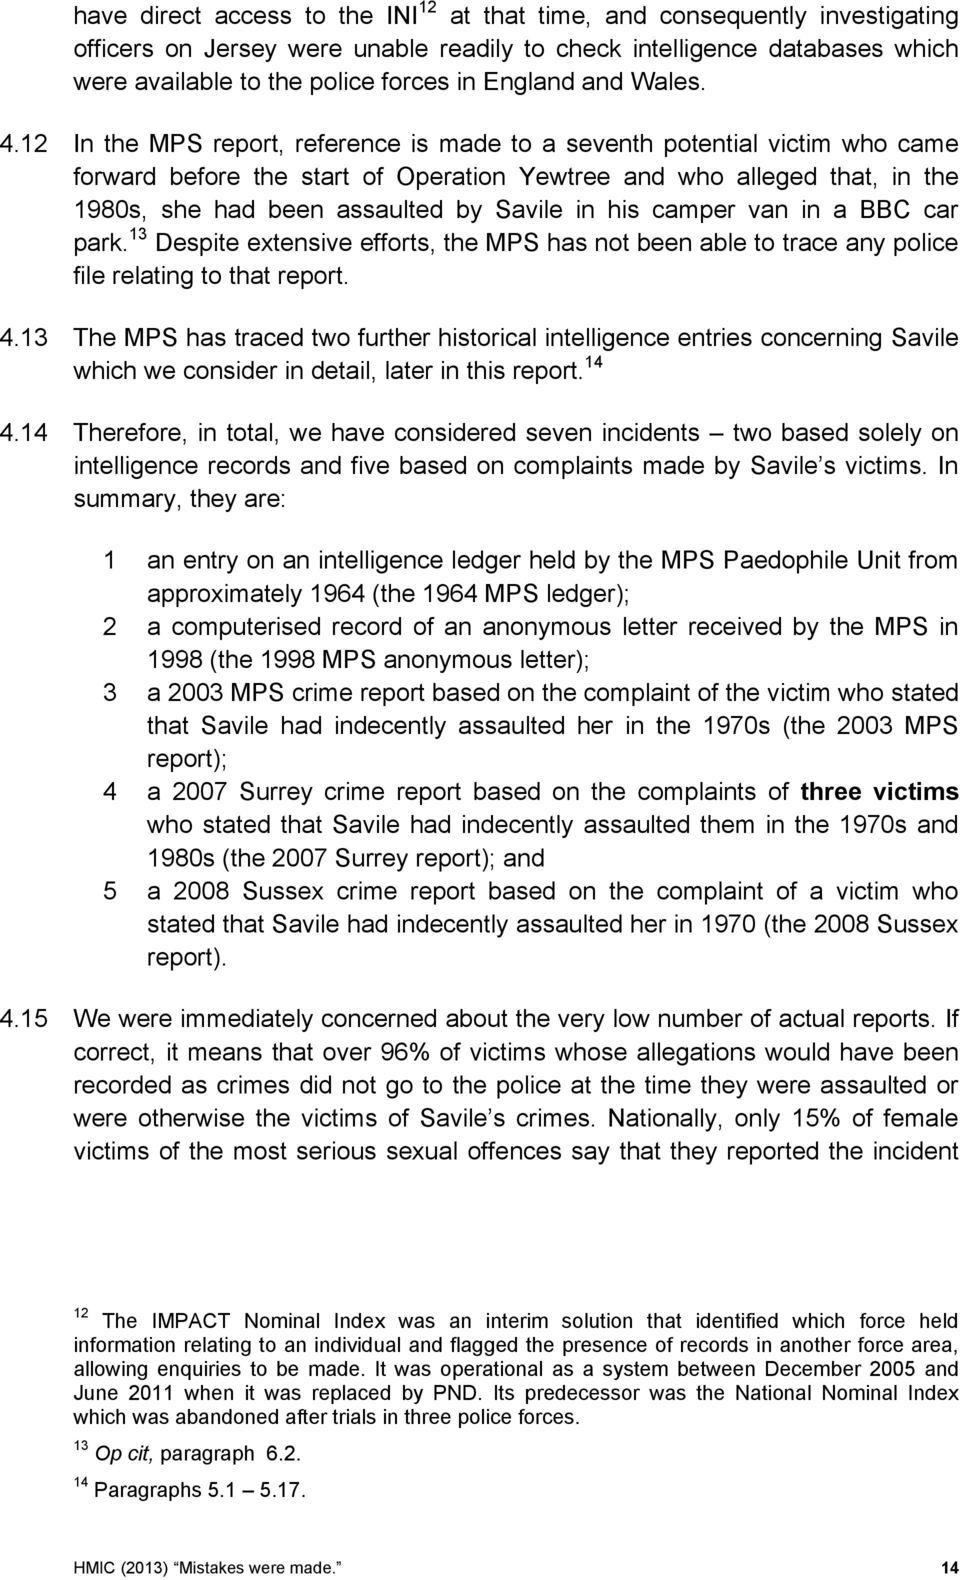 12 In the MPS report, reference is made to a seventh potential victim who came forward before the start of Operation Yewtree and who alleged that, in the 1980s, she had been assaulted by Savile in